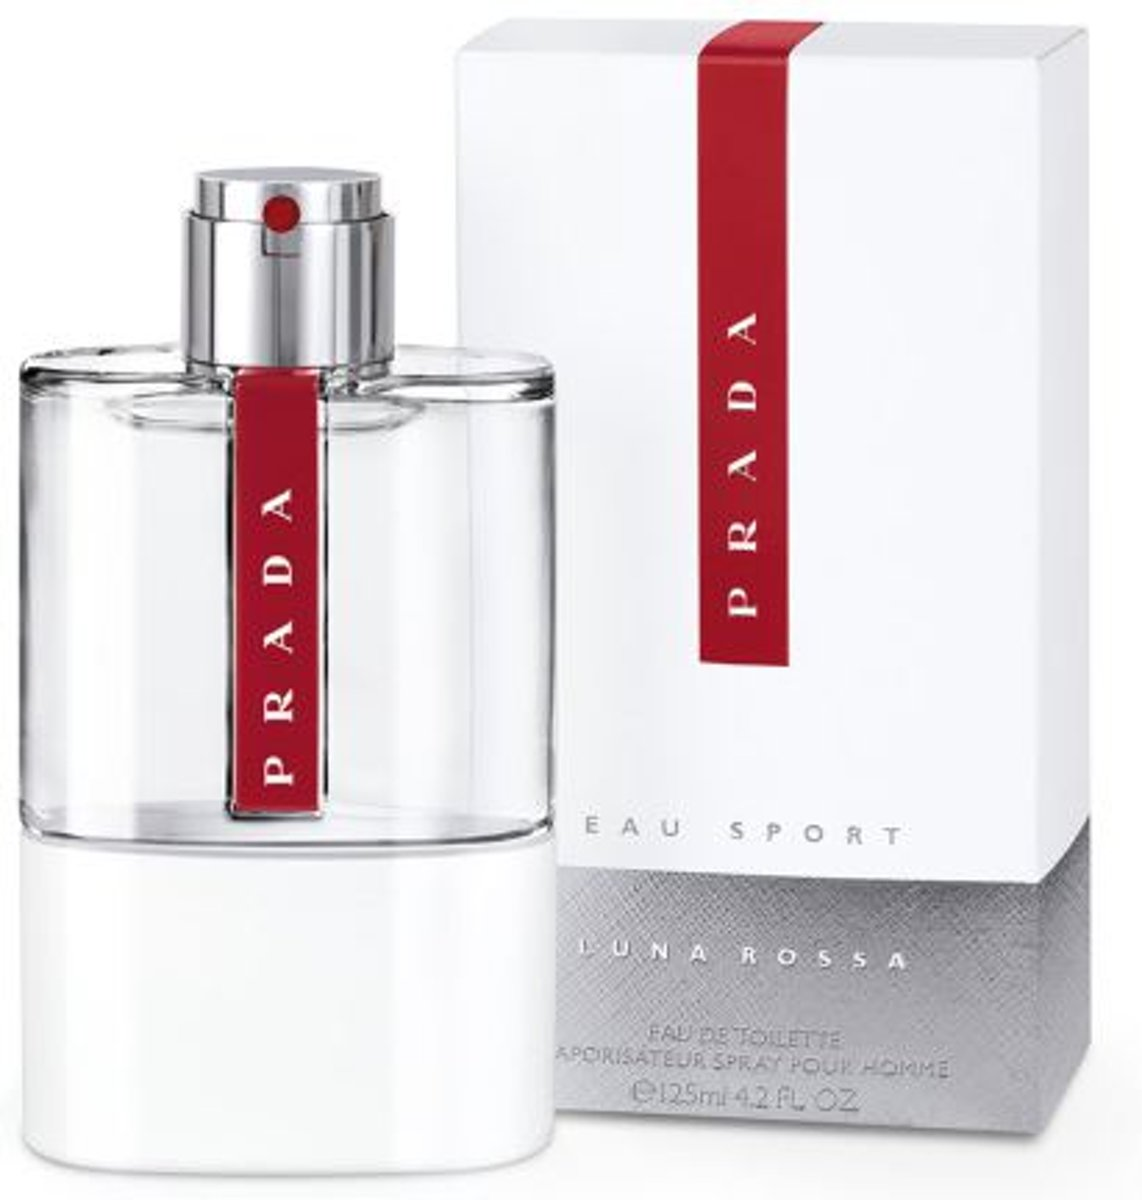 Prada Luna Rossa Eau Sport 125 ml - Eau De Toilette Spray Men